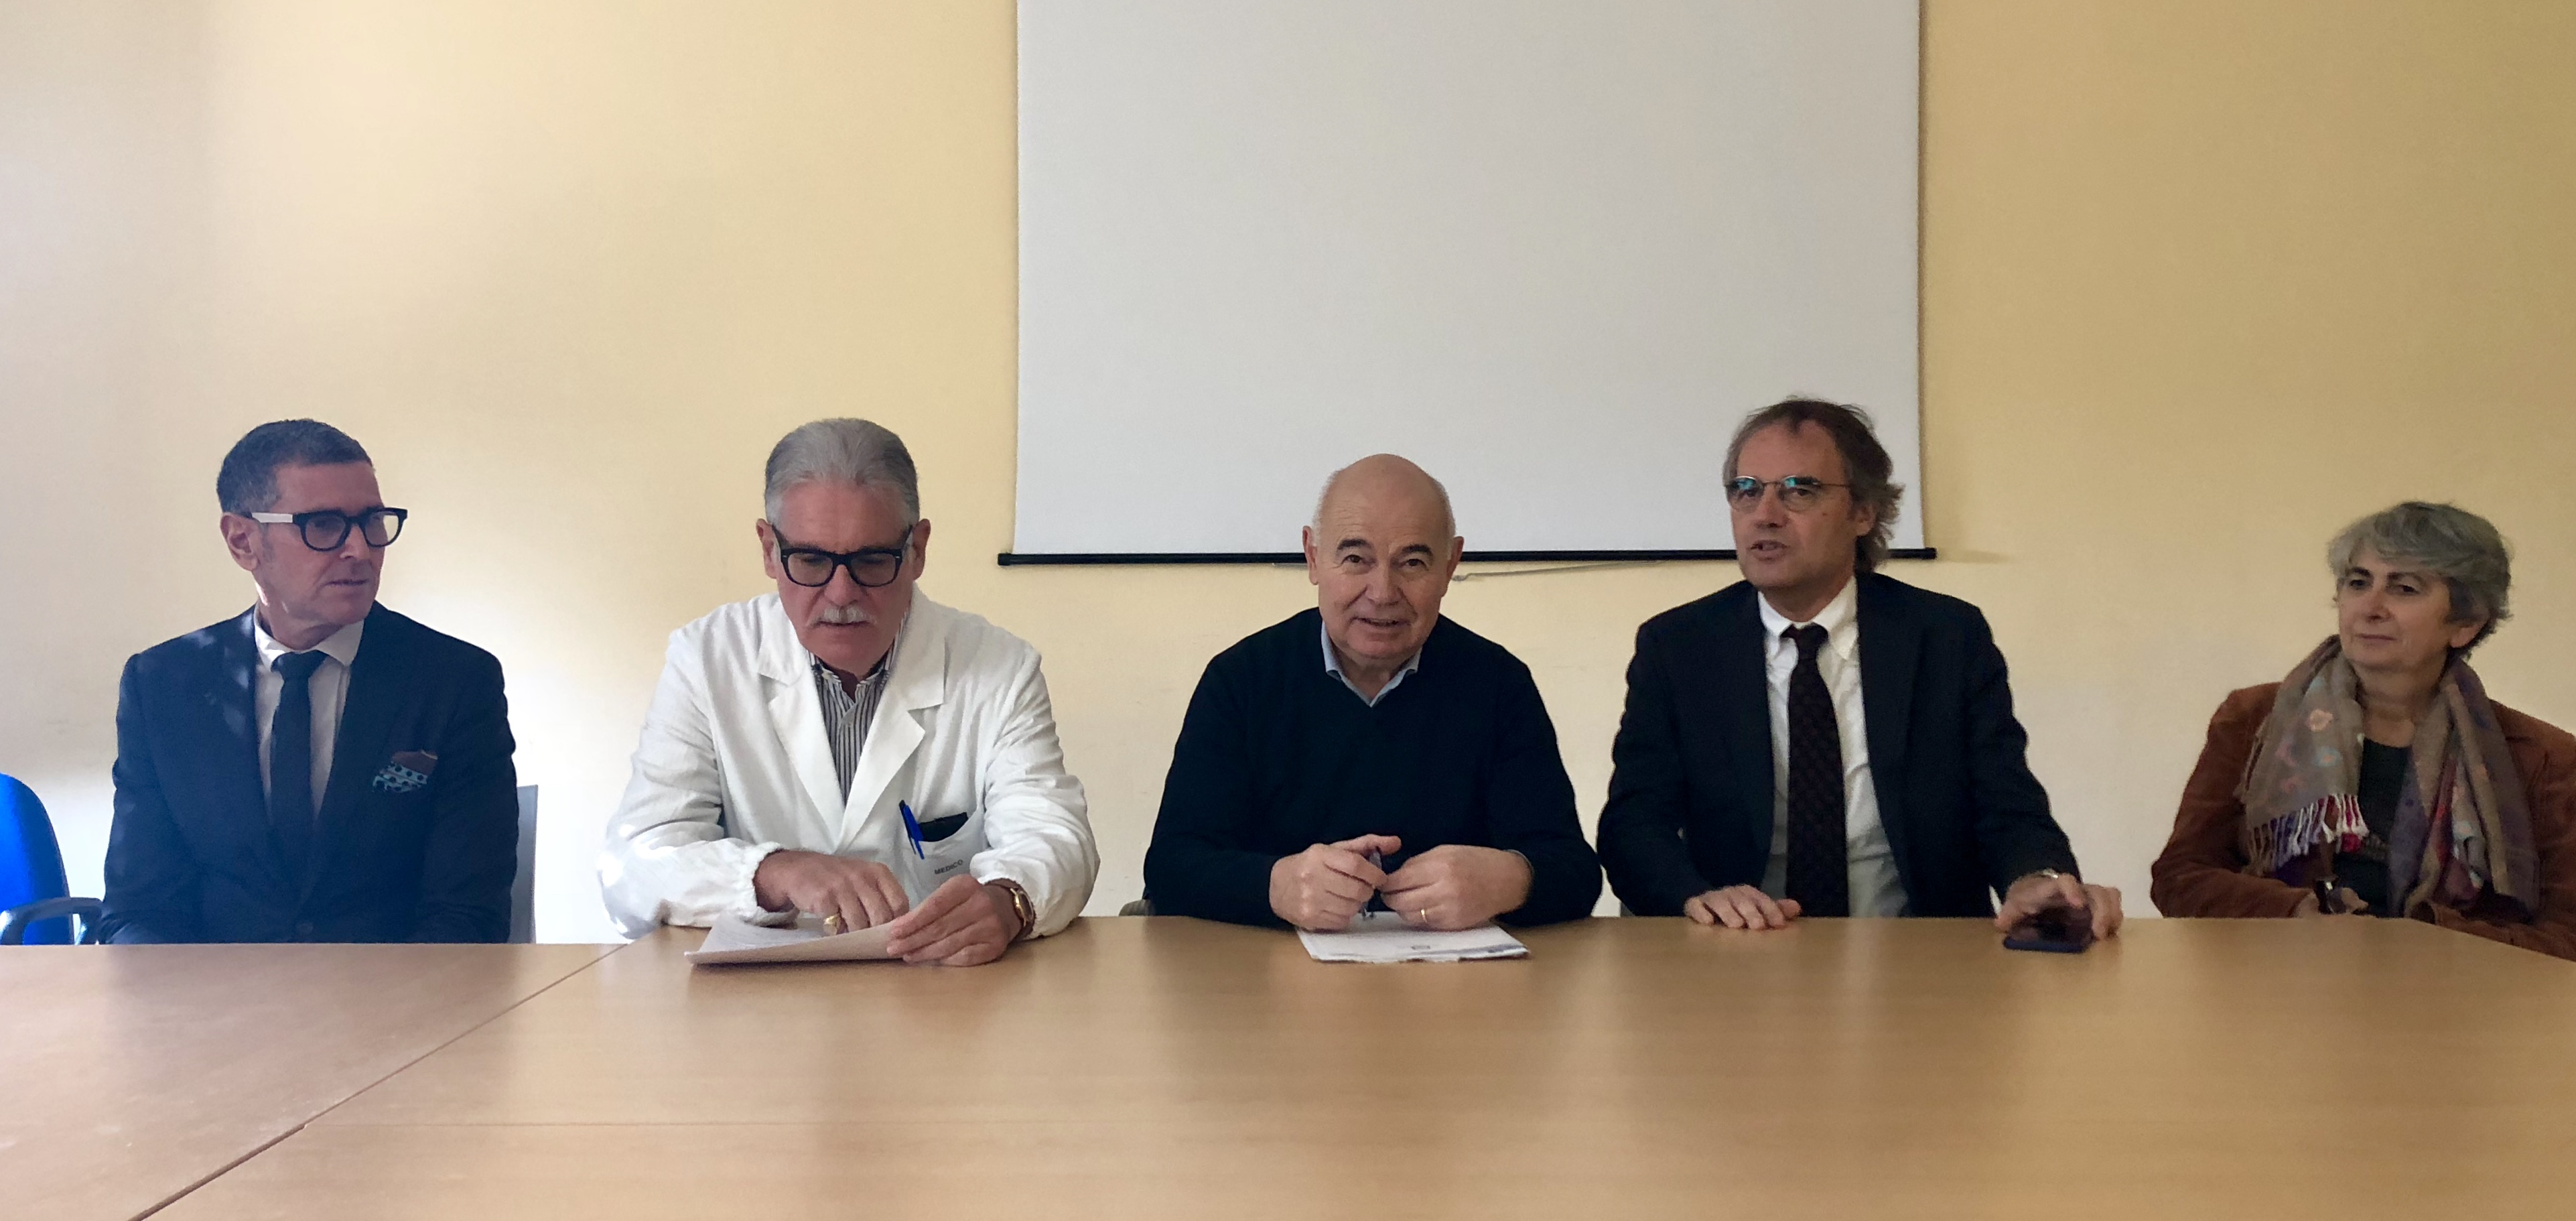 conf ospedale